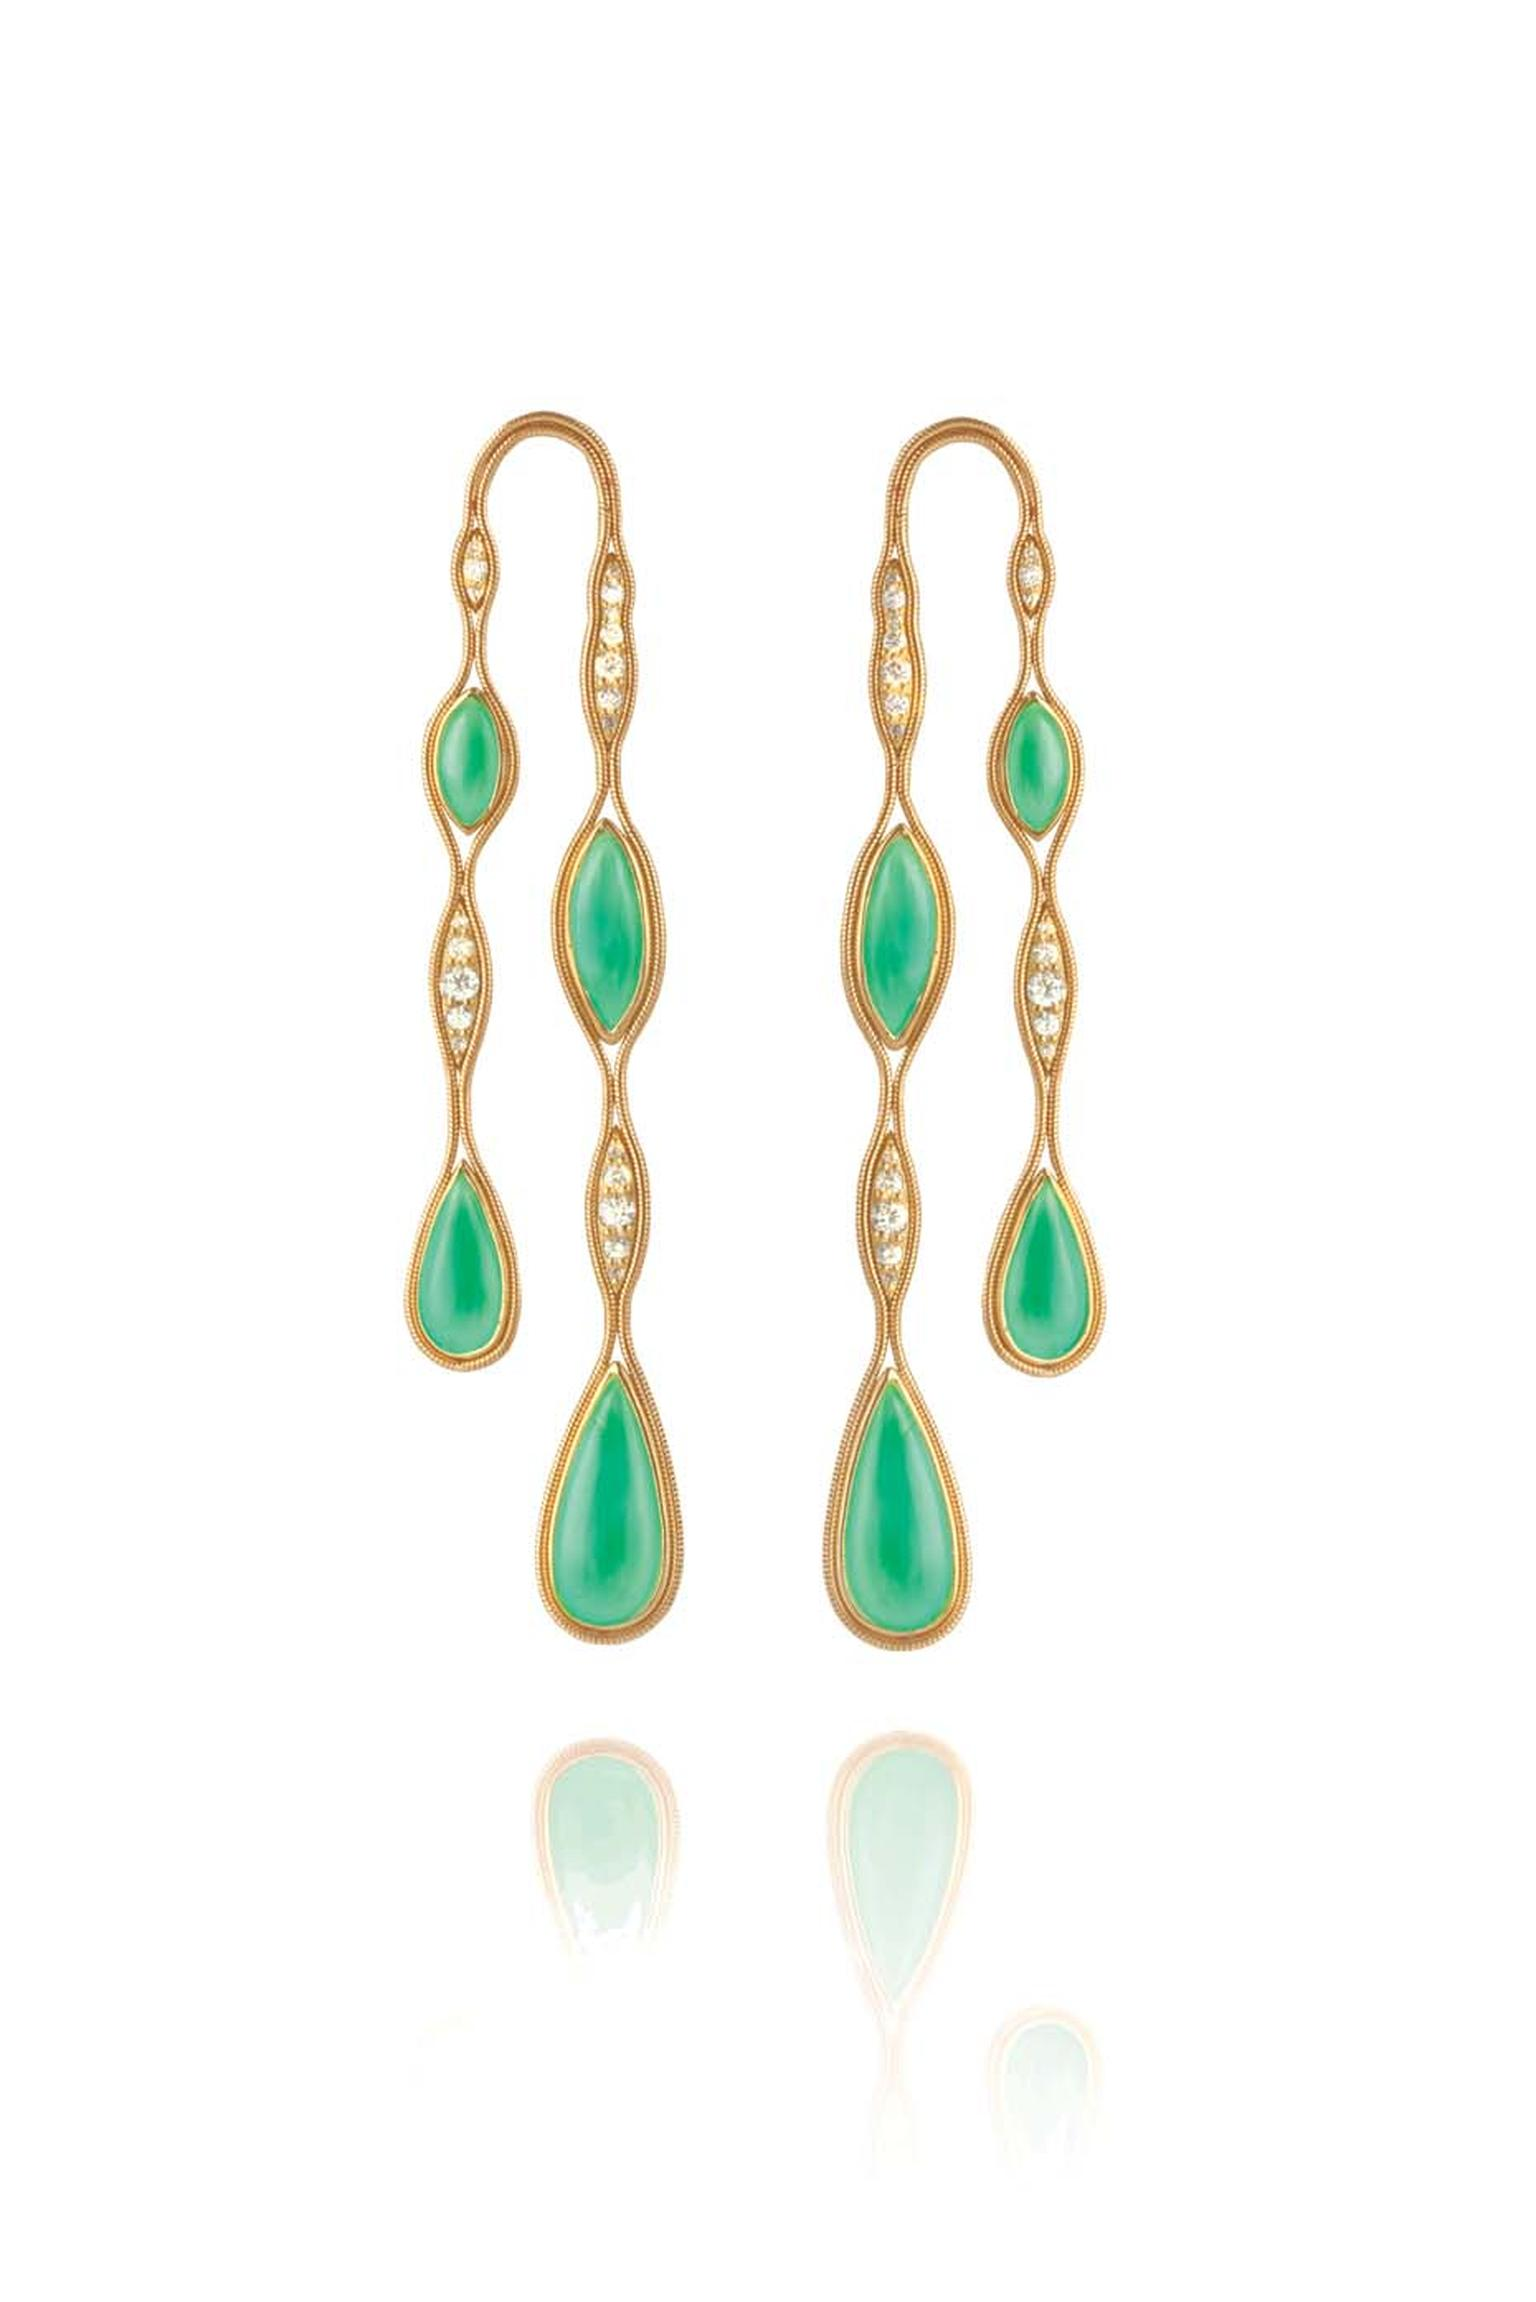 Fernando Jorge Fluid Doubled yellow gold earrings featuring diamonds and chrysoprase.